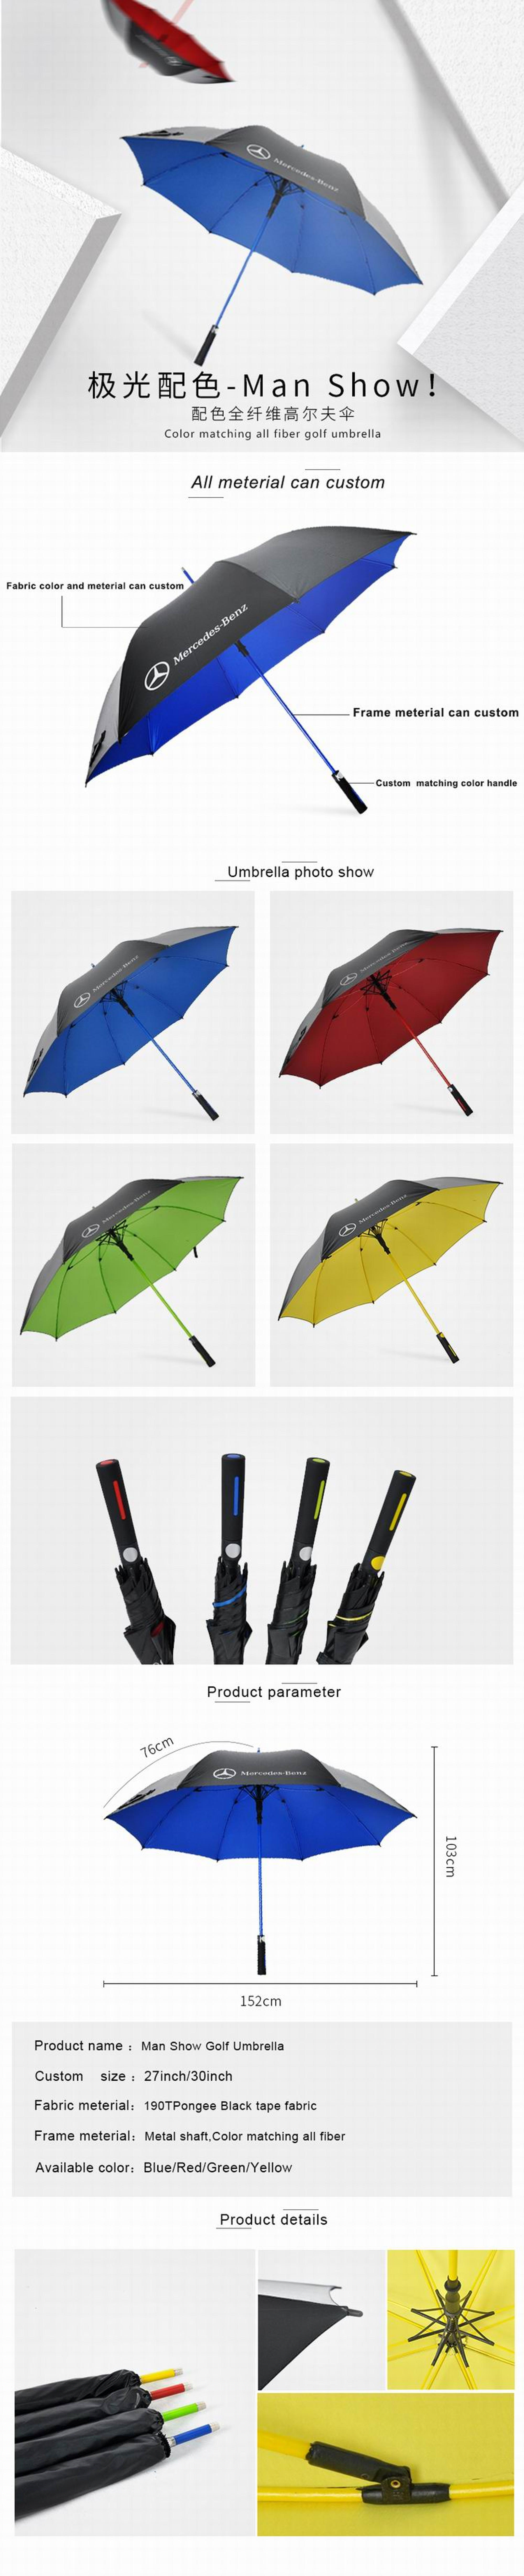 NEW GOLF UMBRELLA750.jpg